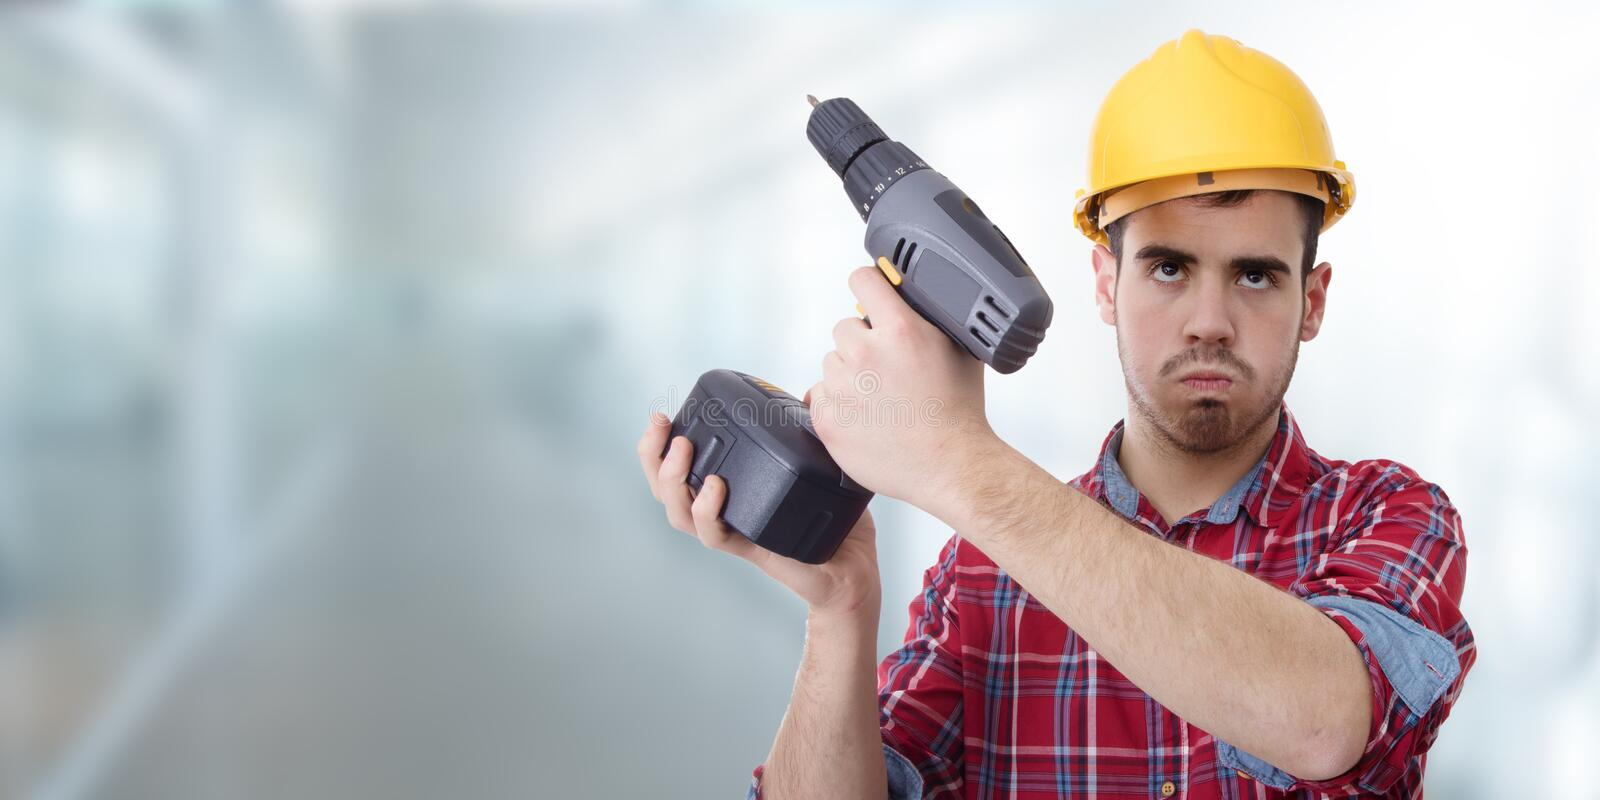 Constructor with drill. Renovations, repairs and bricolage stock photography